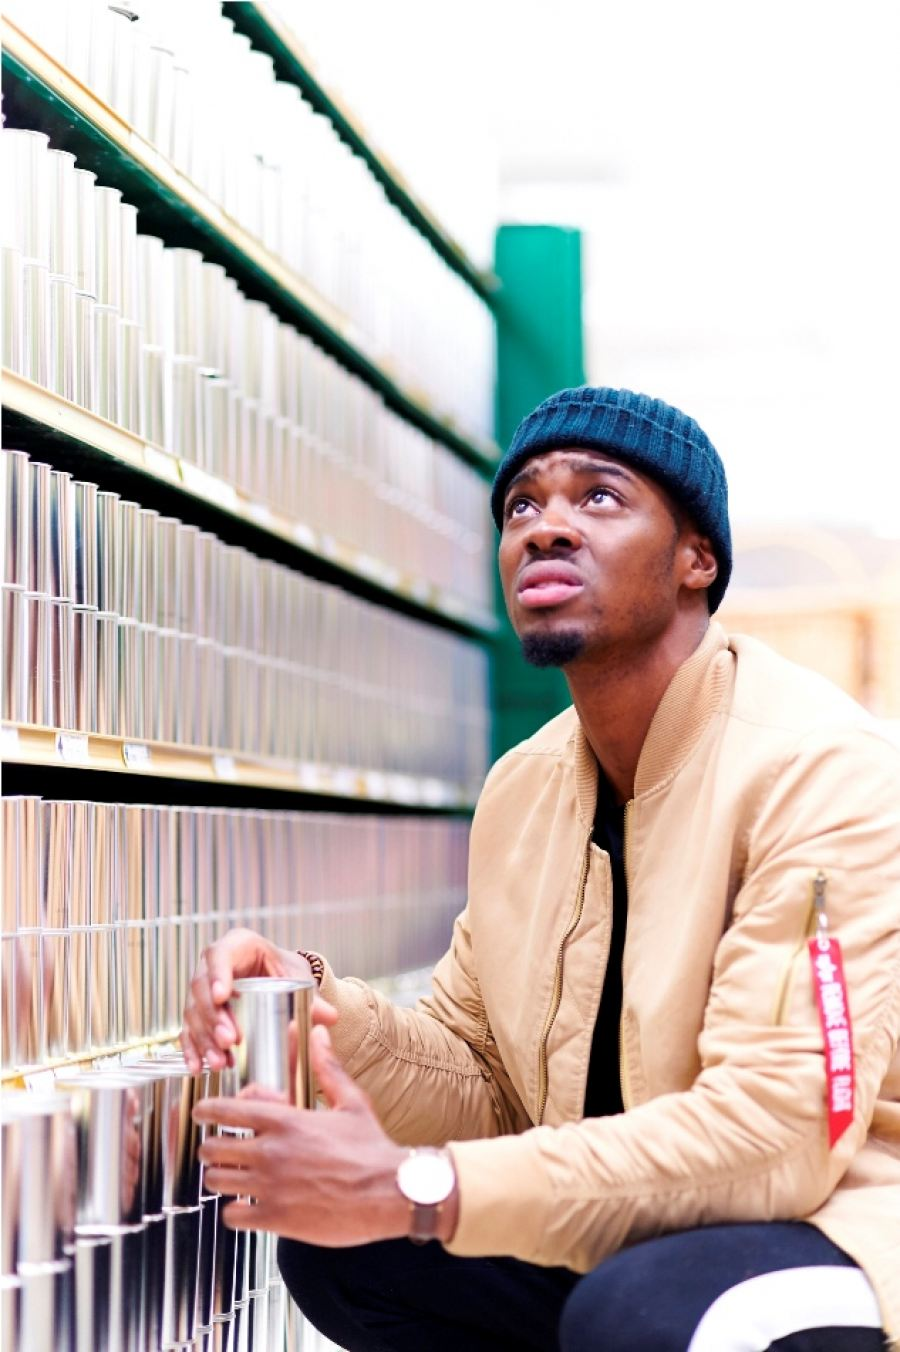 TV presenter Tino Chinyani navigate the supermarket aisles trying to buy something when confronted with shelves of identical silver unlabeled tins